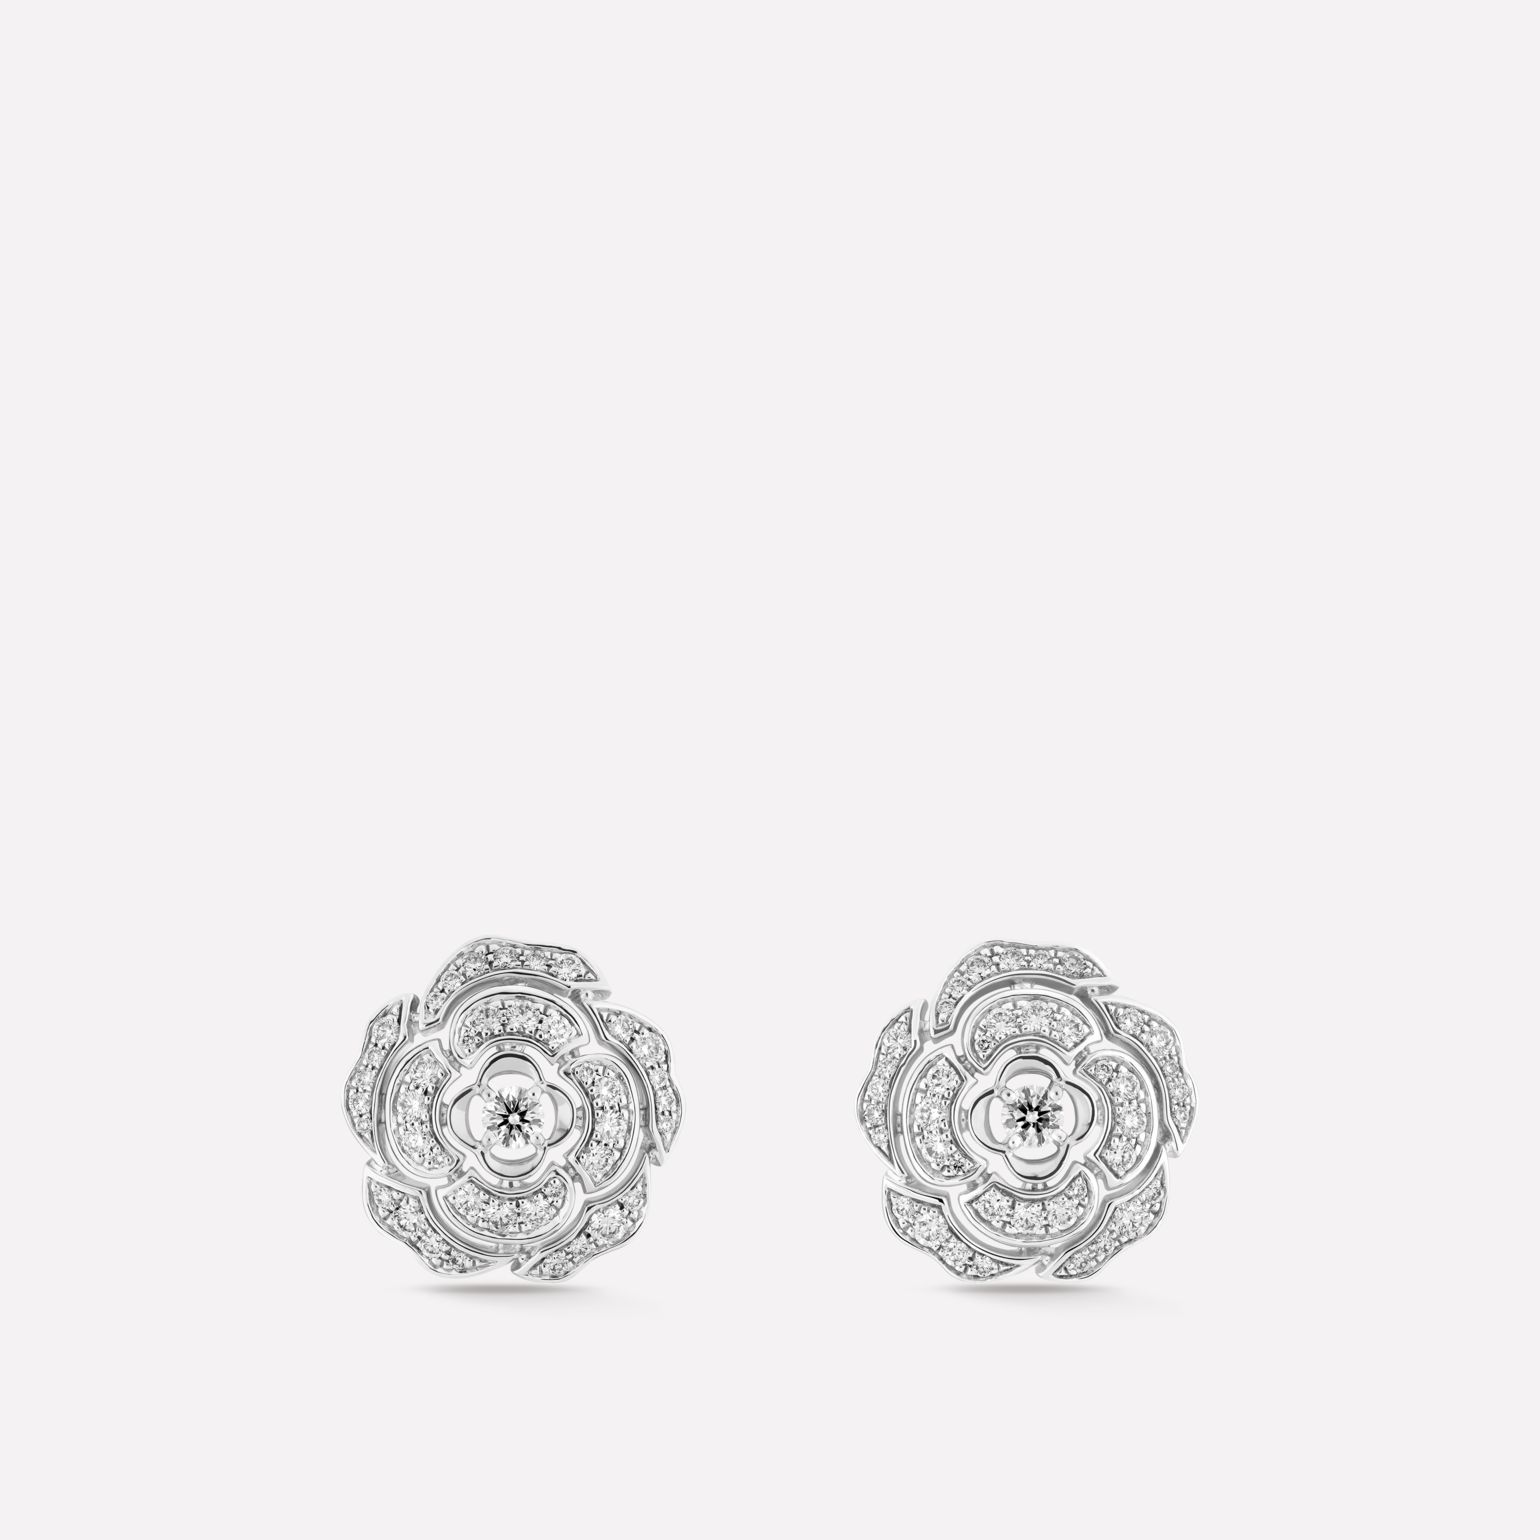 Bouton de Camélia earrings 18K white gold, diamonds